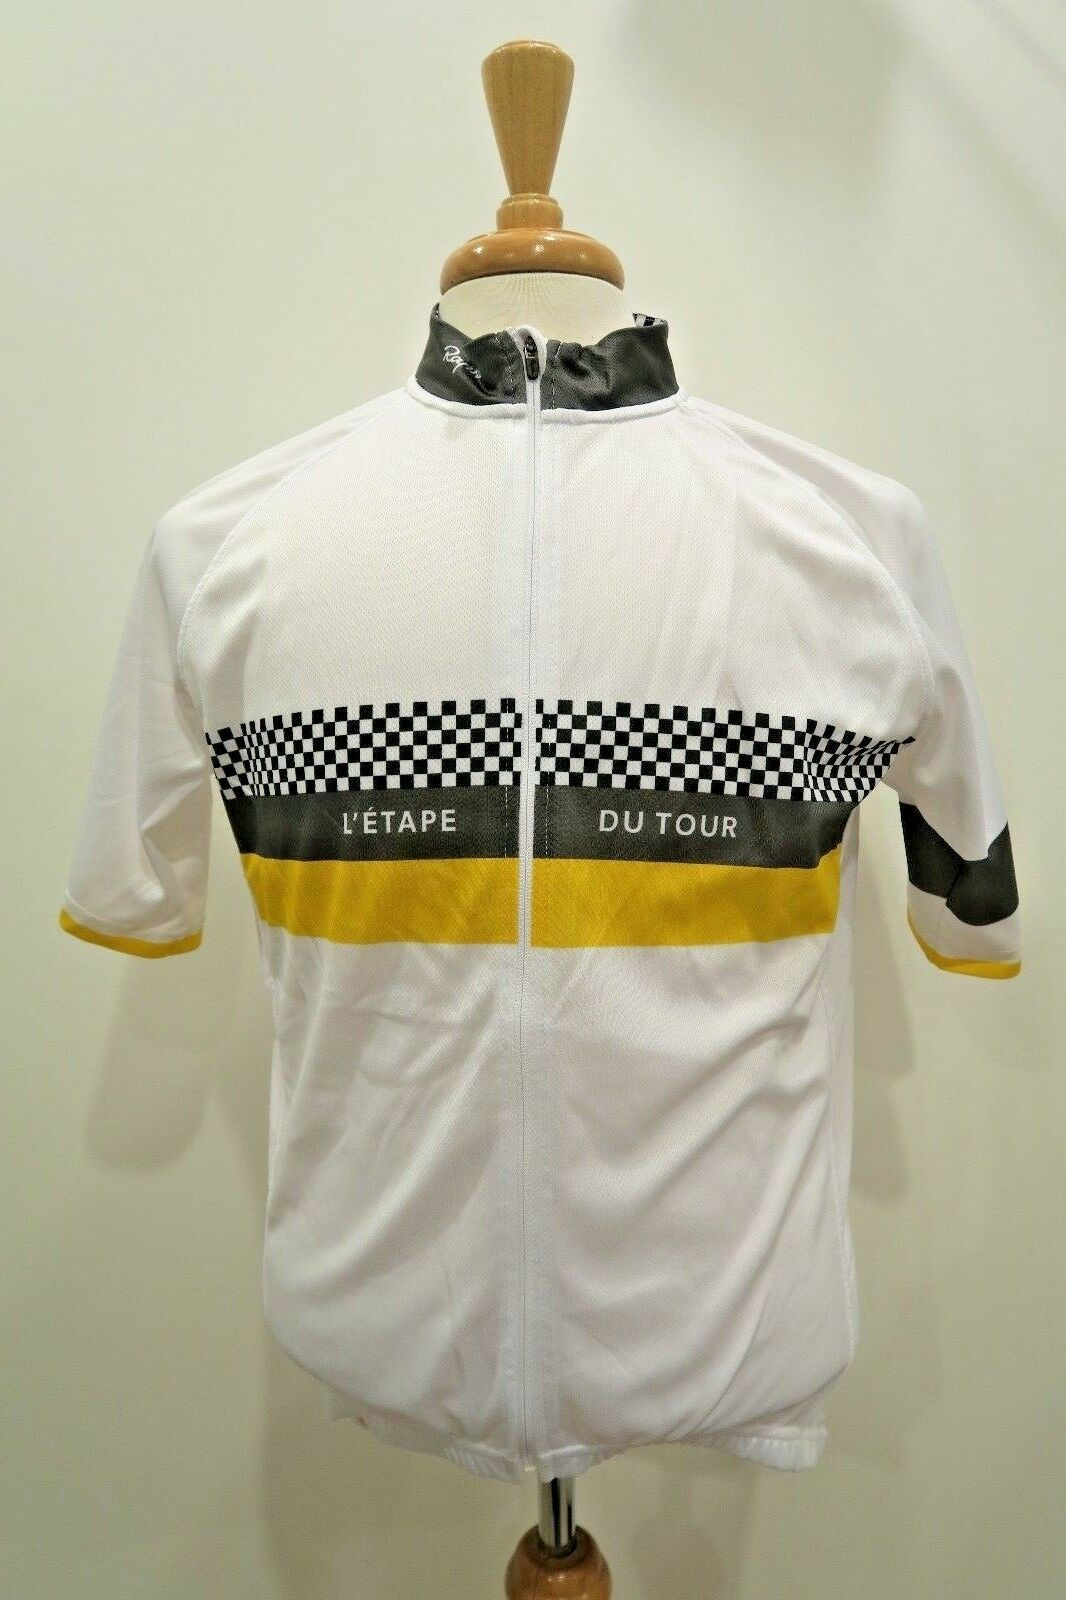 Rapha L'Etape Du Tour Super Lightweight Cycling Jersey Shirt 2012 XL